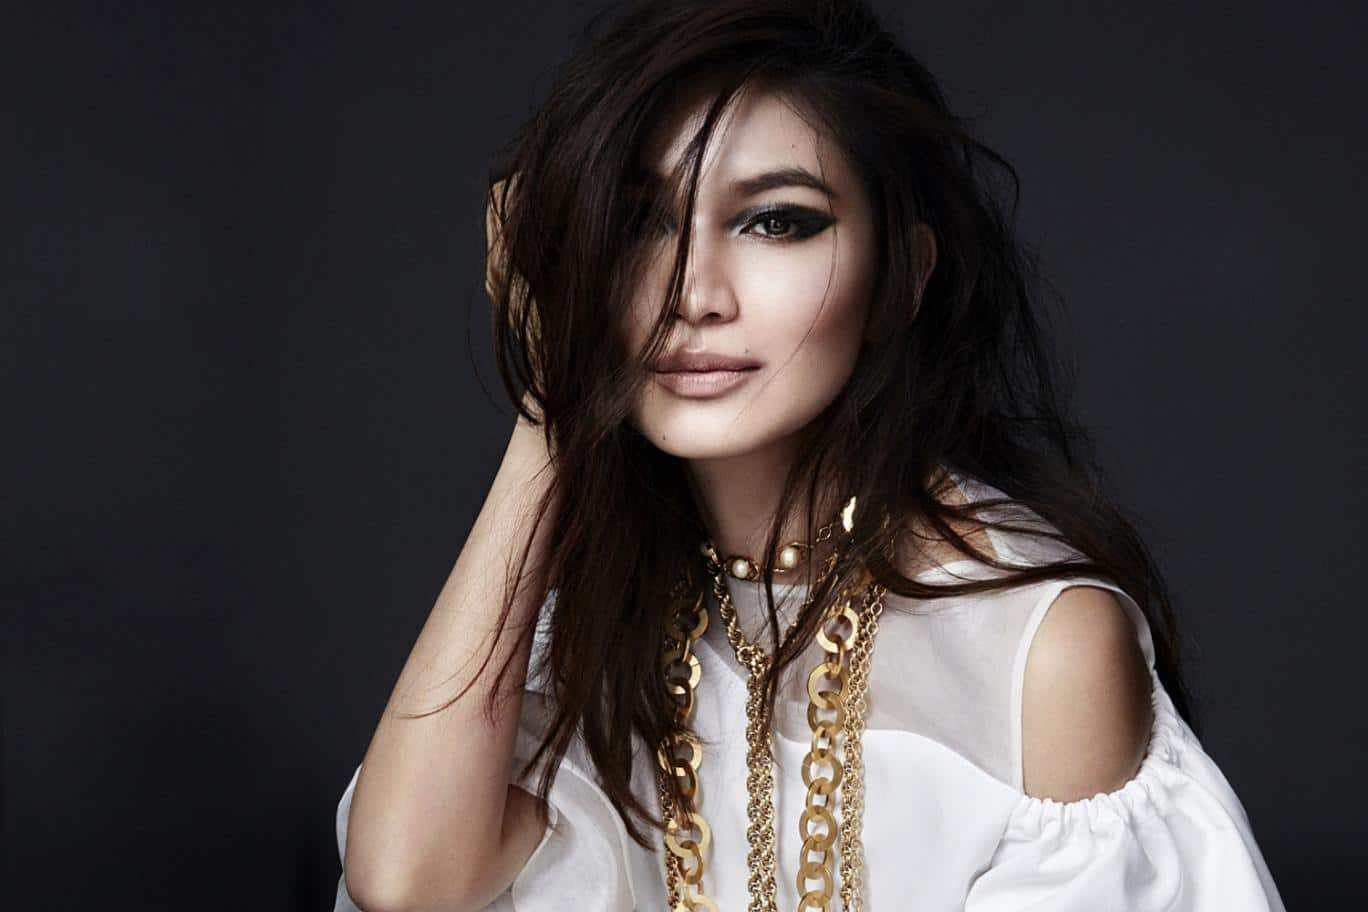 Gemma Chan Ethnicity, Race, and Nationality